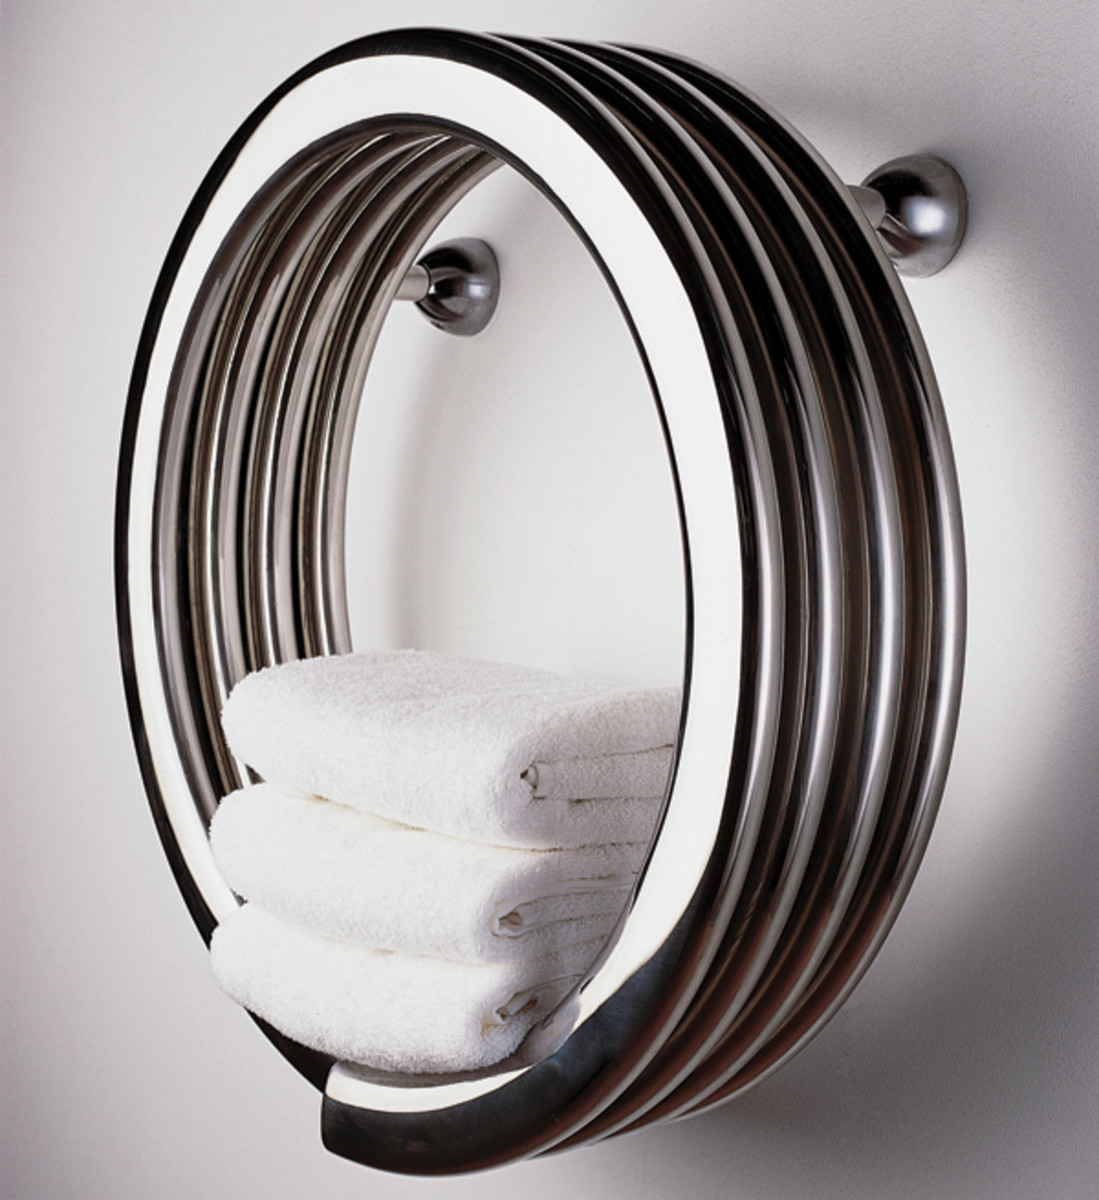 The Hot Hoop from Runtal is actually a radiator that heats the bathroom.